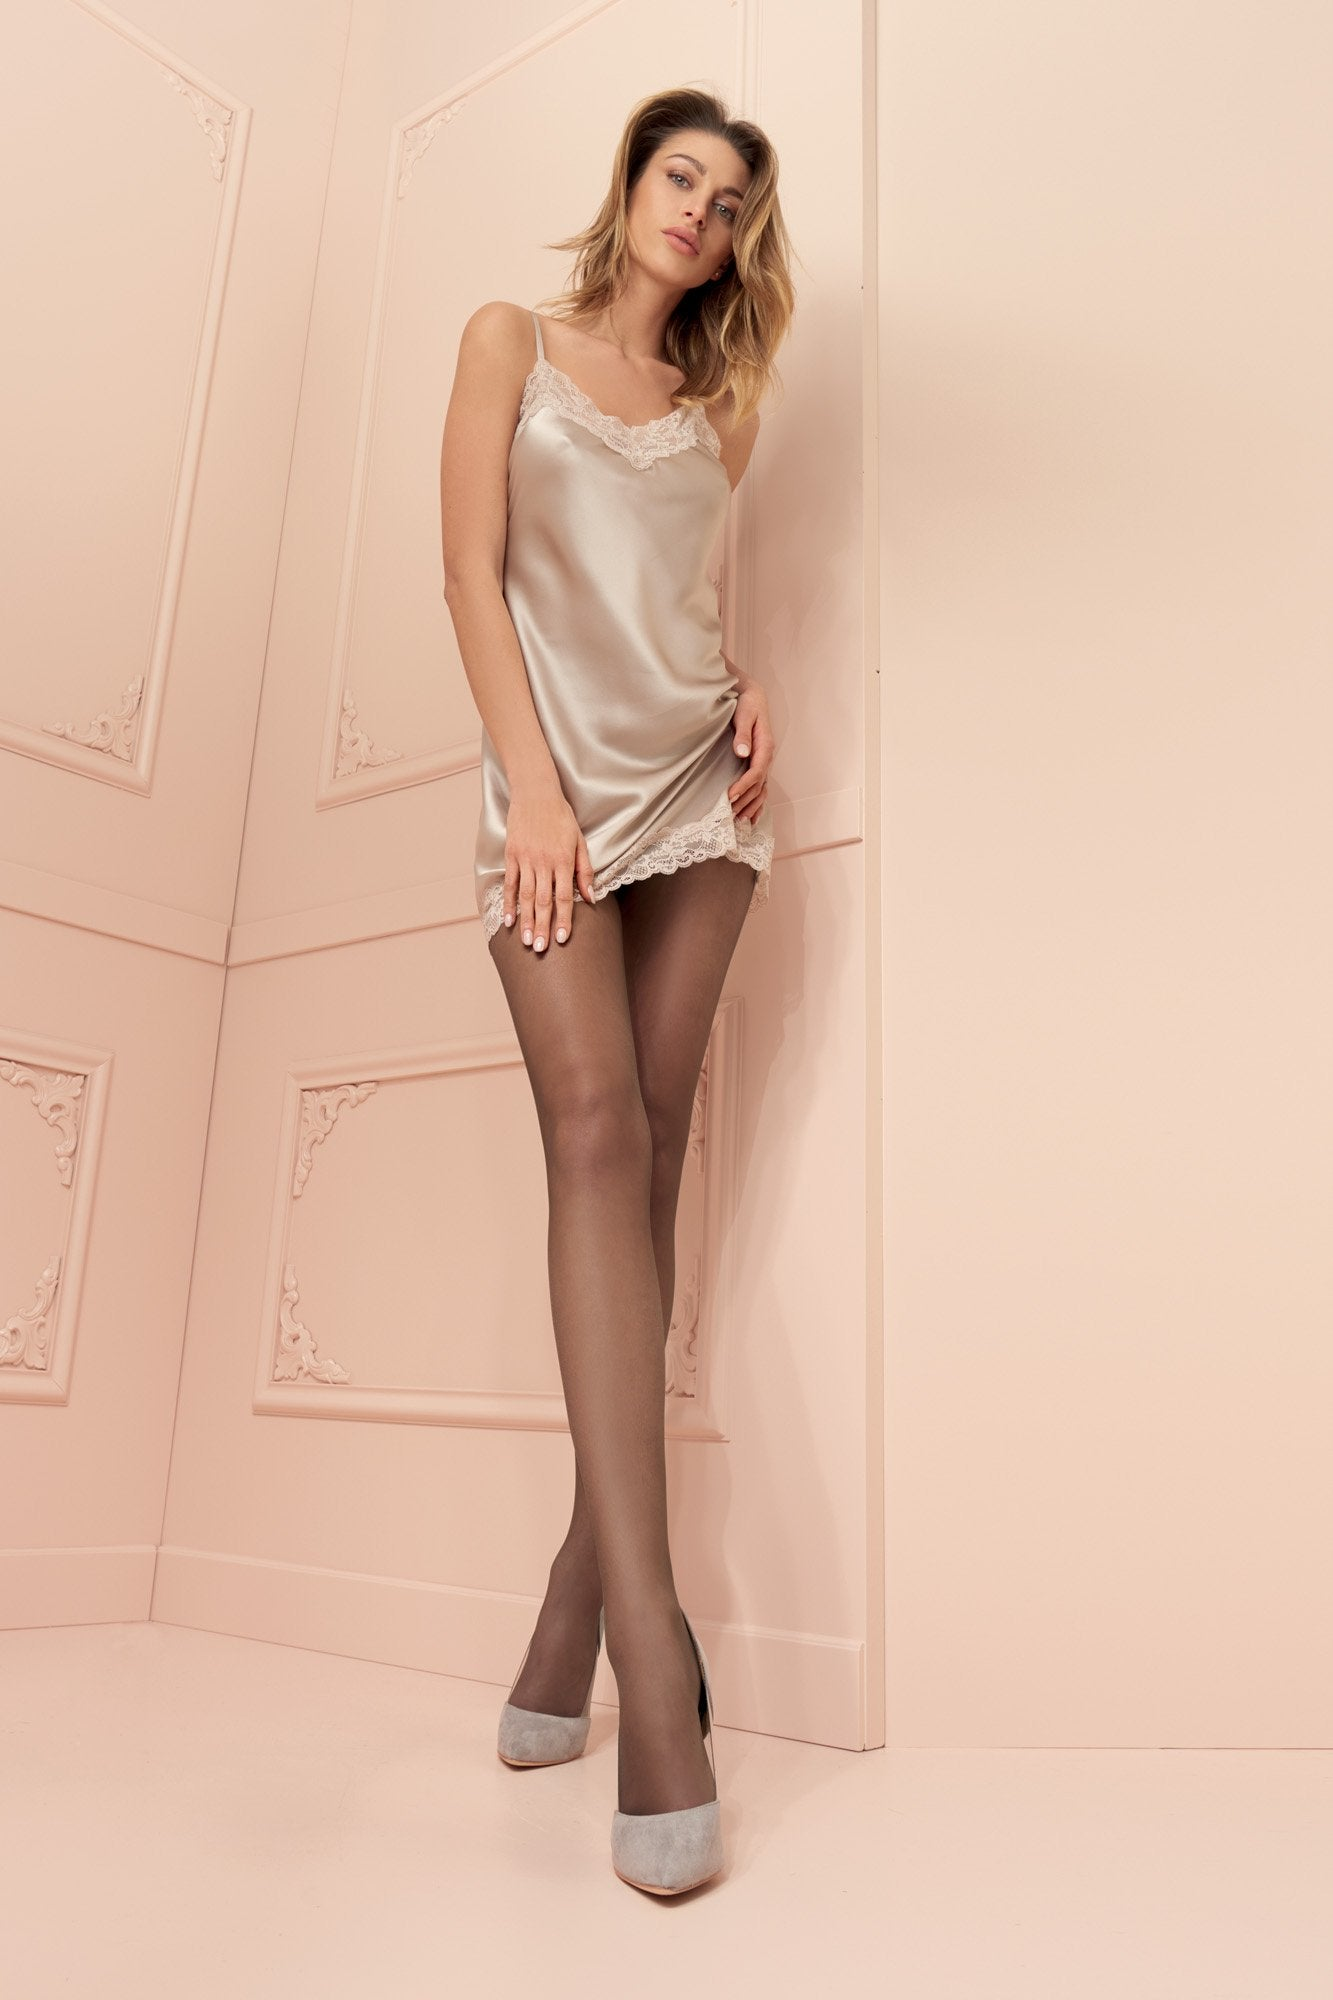 Trasparenze Katia Tights - The Hosiery Box